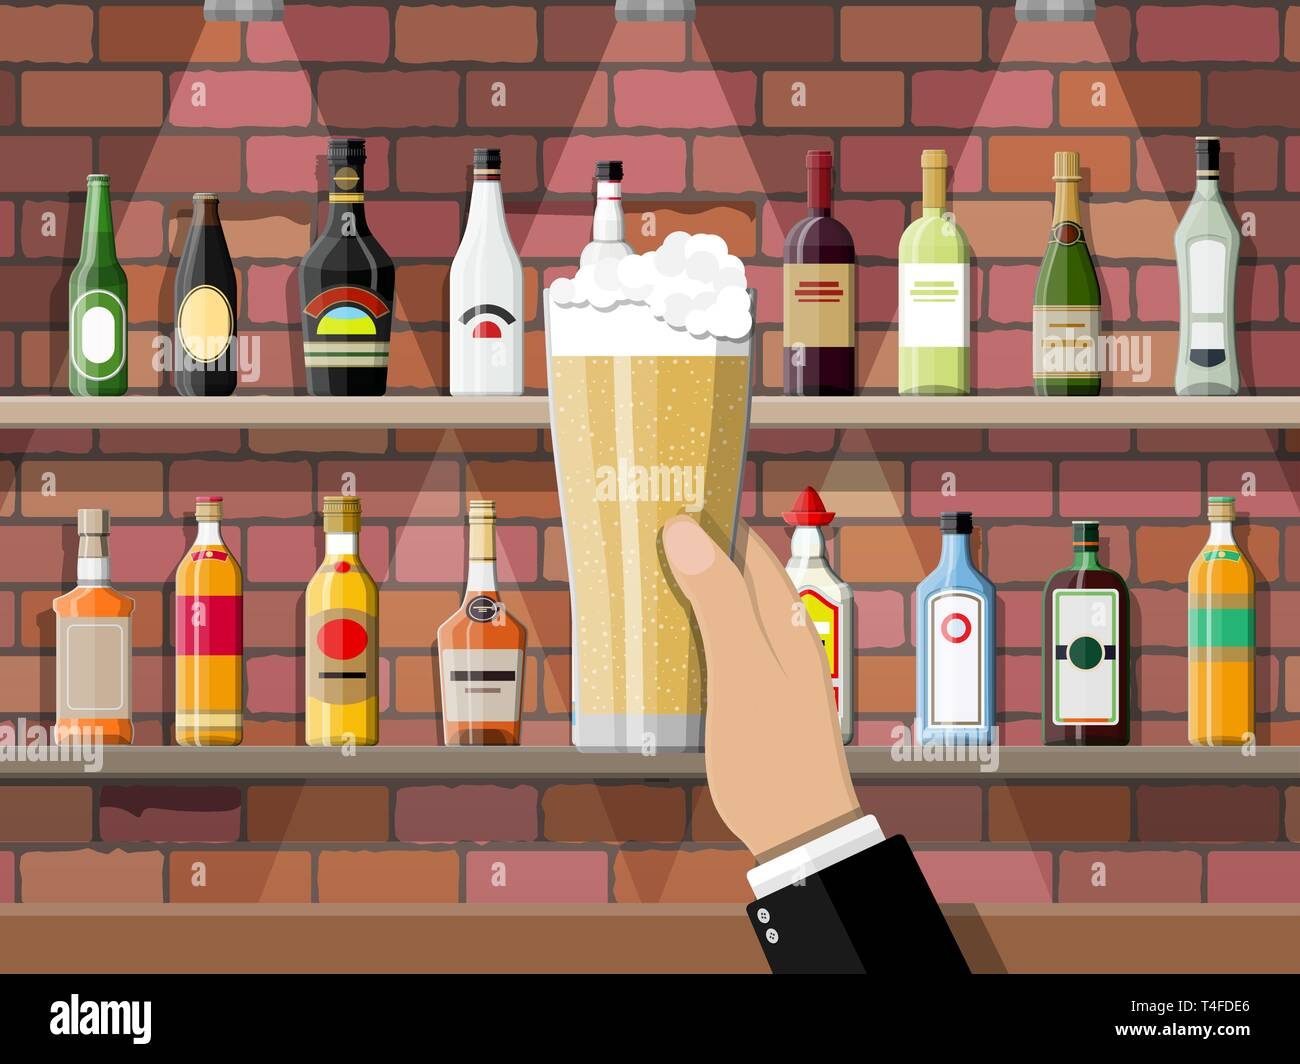 Drinking establishment. Hand with glass of beer. Interior of pub, cafe or bar. Bar counter, shelves with alcohol bottles. Glasses and lamp. Vector ill Stock Vector